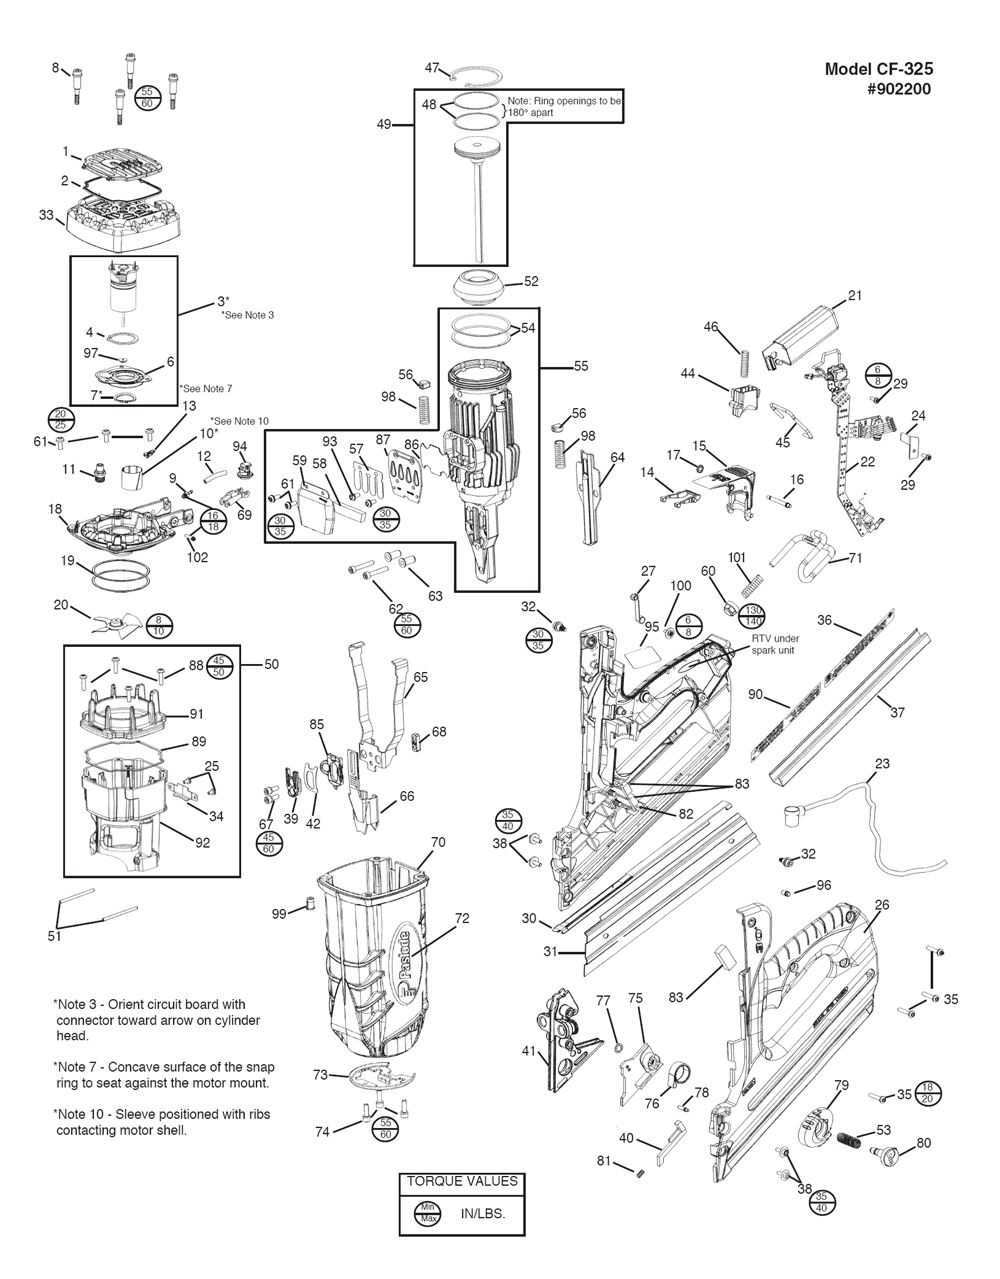 Paslode Parts Schematics Pictures to Pin on Pinterest